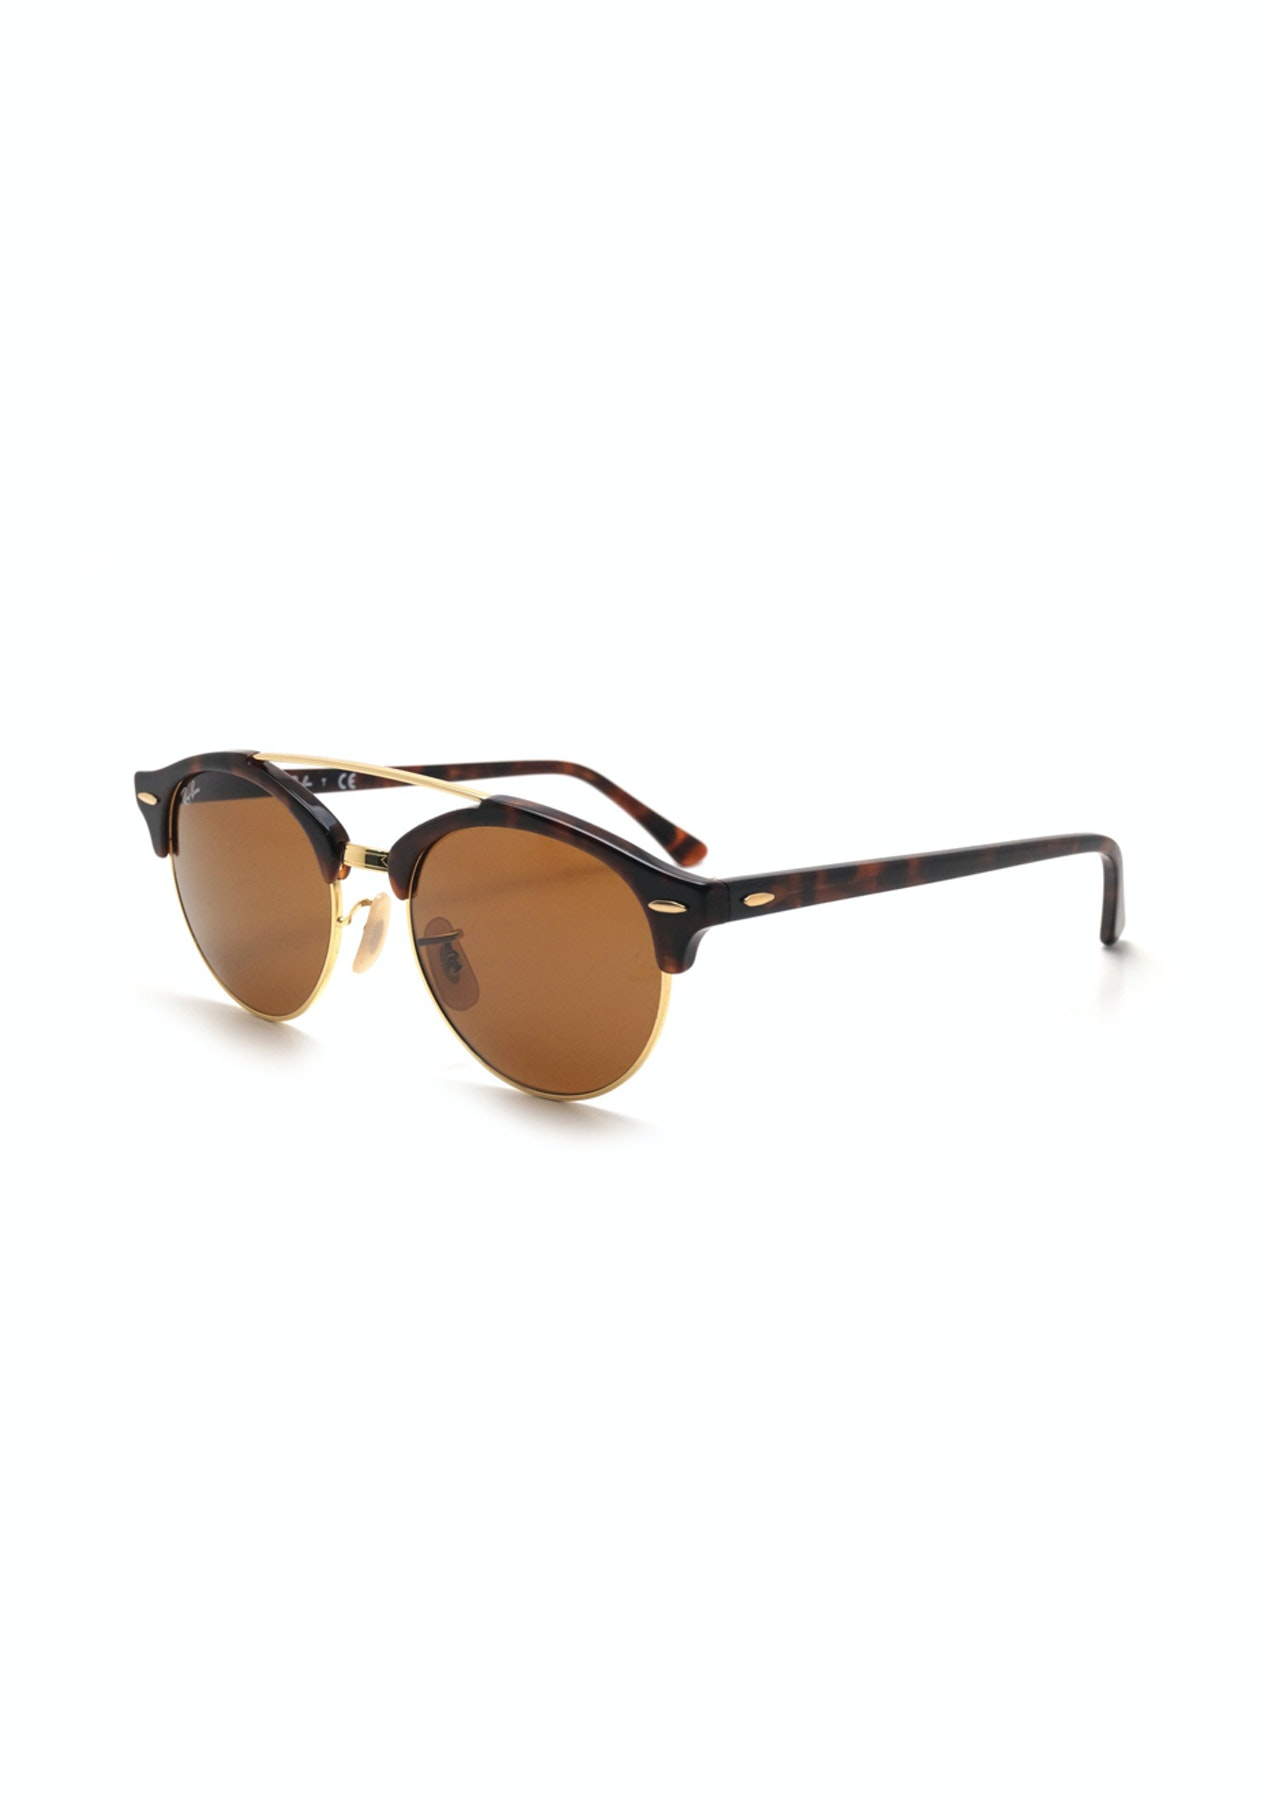 37bd2ad302 Ray-Ban Clubround Double Bridge Tortoise Brown Sunglasses - Ray Ban   More  - Onceit